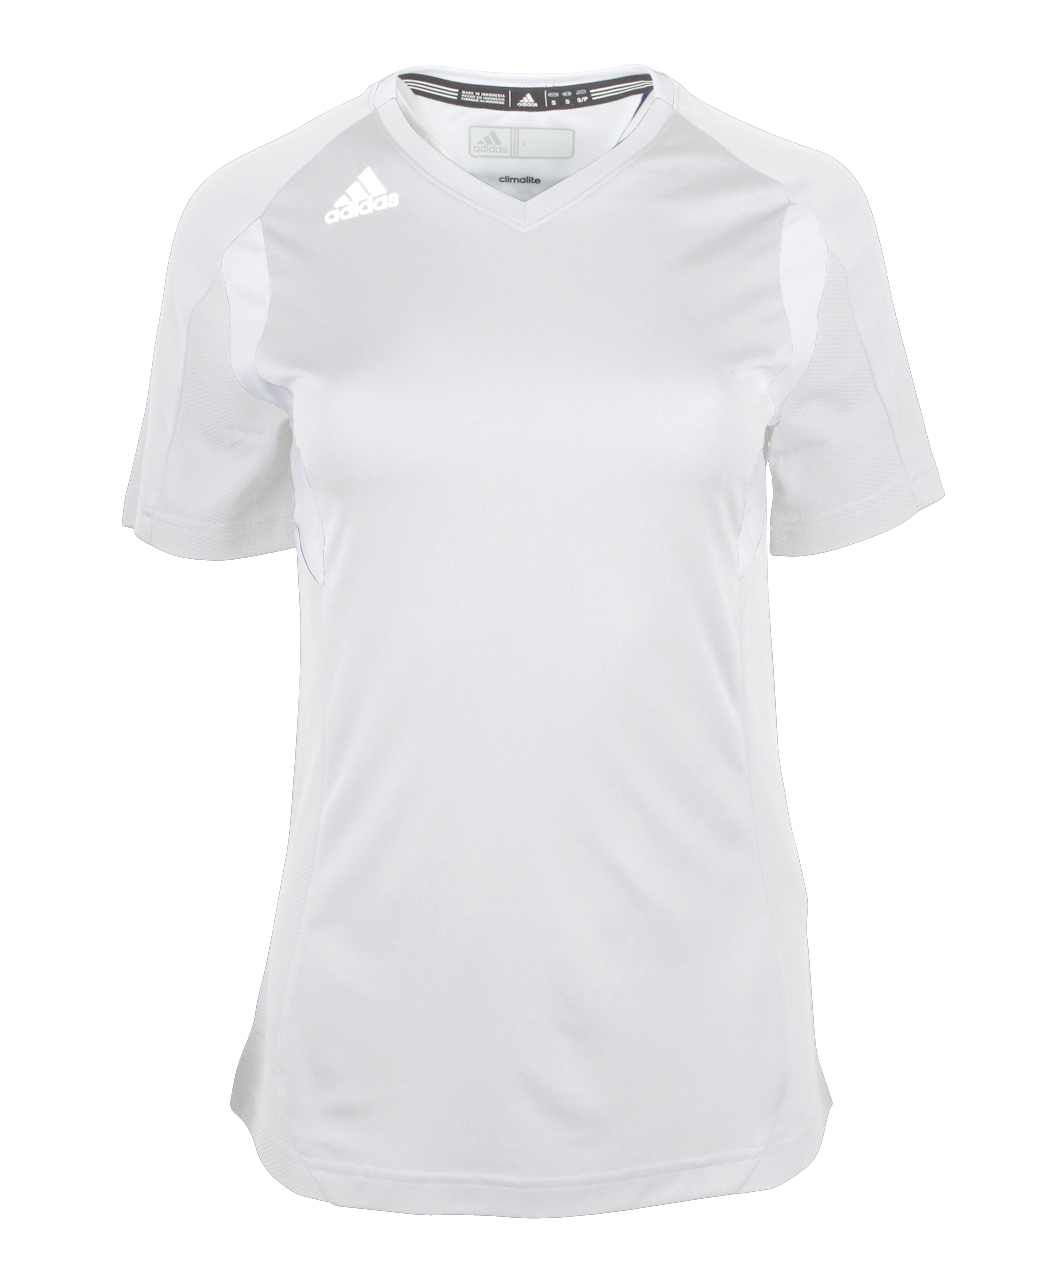 Picture of Adidas Women's Climalite Utility Short Sleeve Jersey